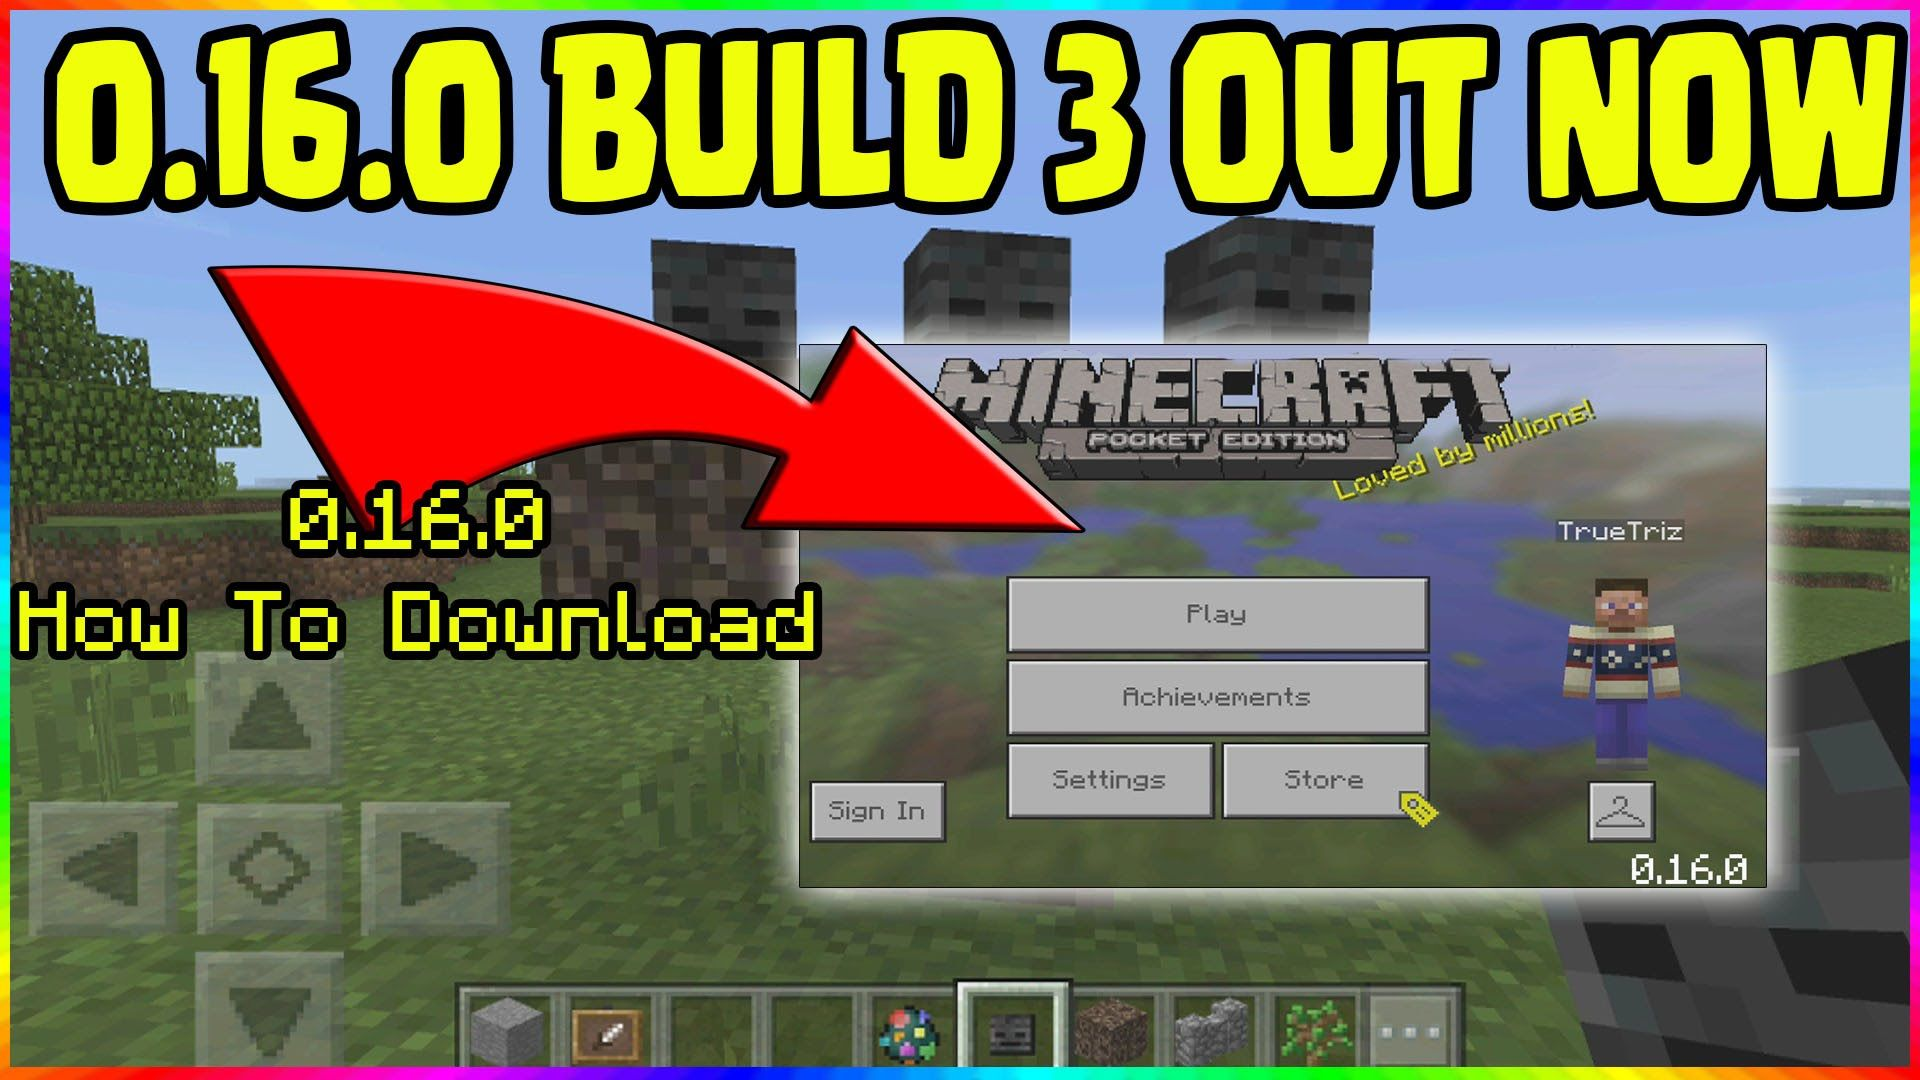 MINECRAFT PE 0.16.0 BETA BUILD 3 UPDATE OUT NOW! // HOW TO